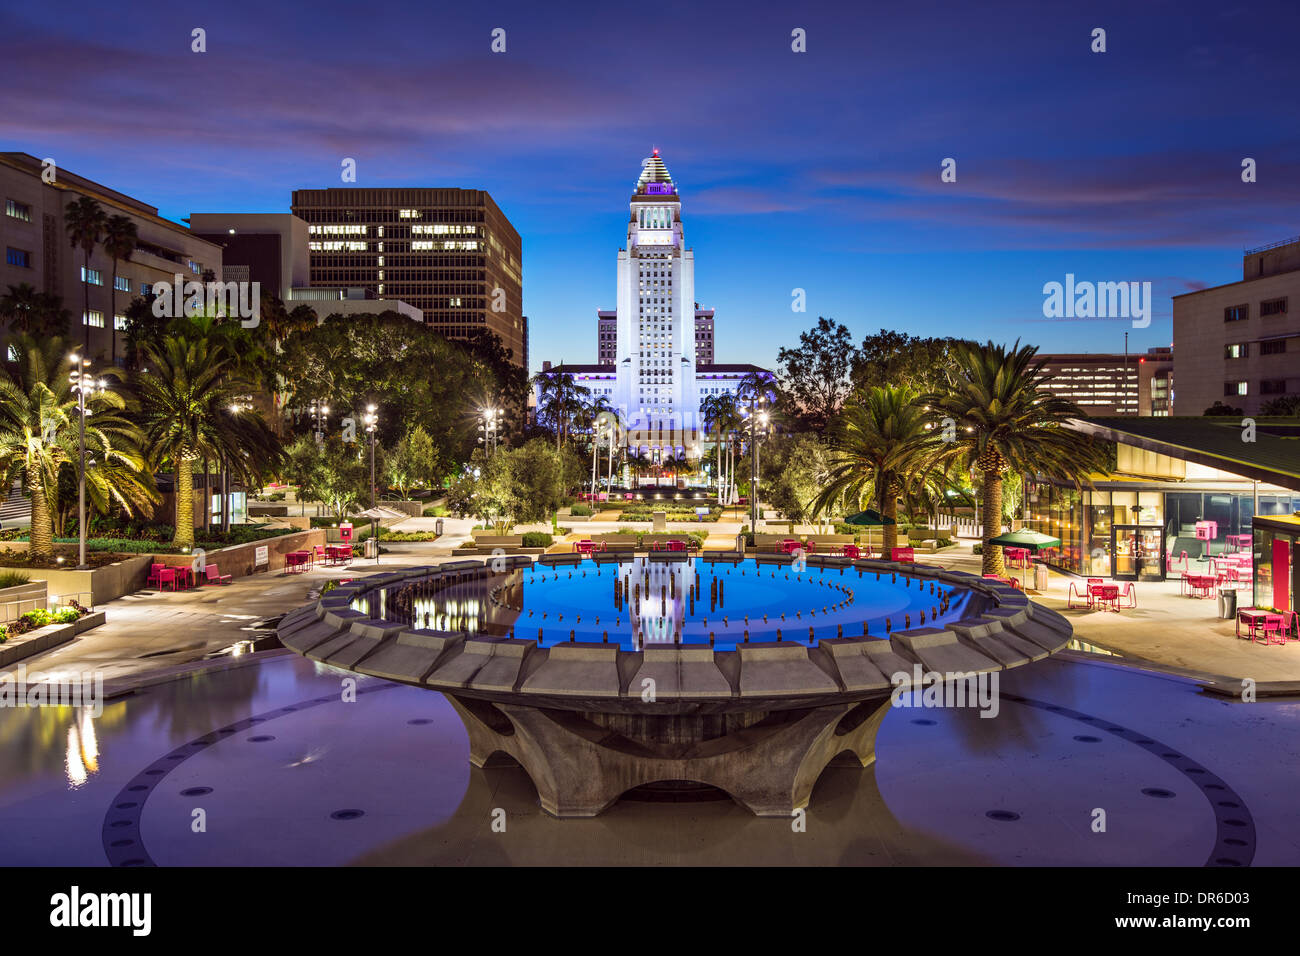 Los Angeles, California at City Hall. - Stock Image